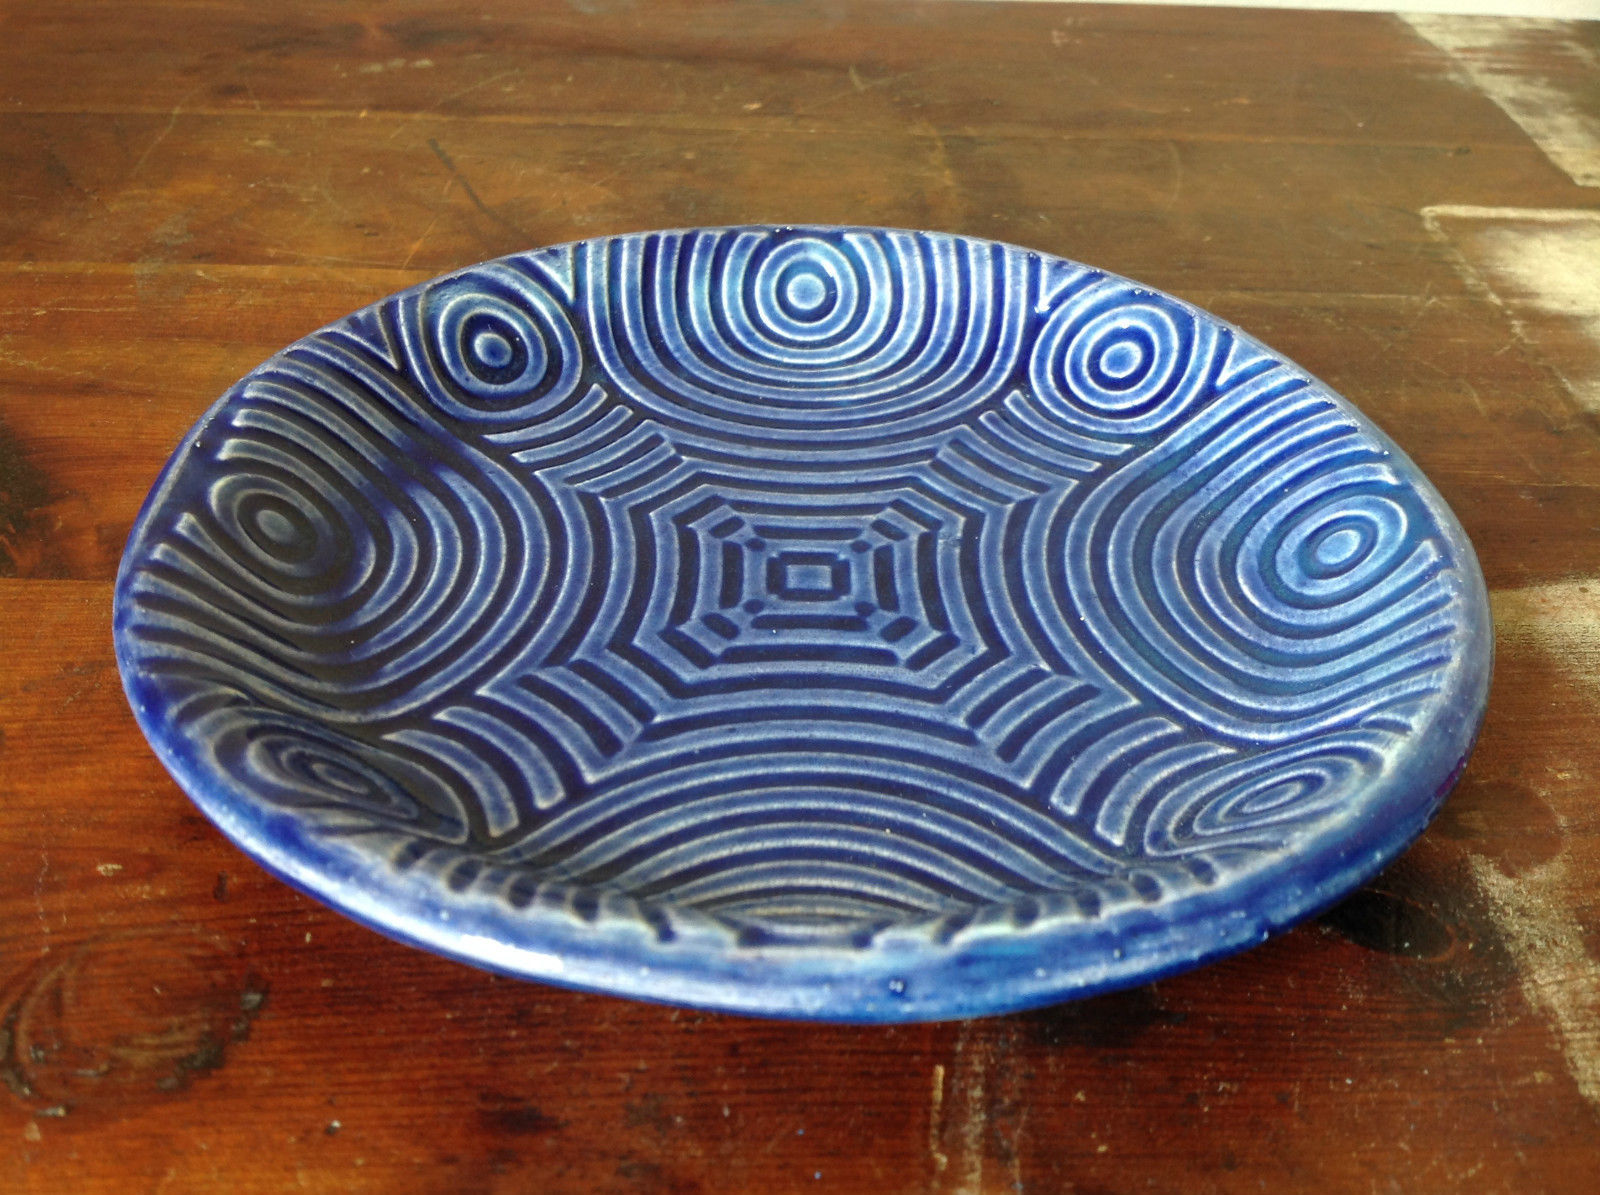 Deep Blue Ceramic Plate Saucer Interesting Relief Pattern Handcrafted Artisan